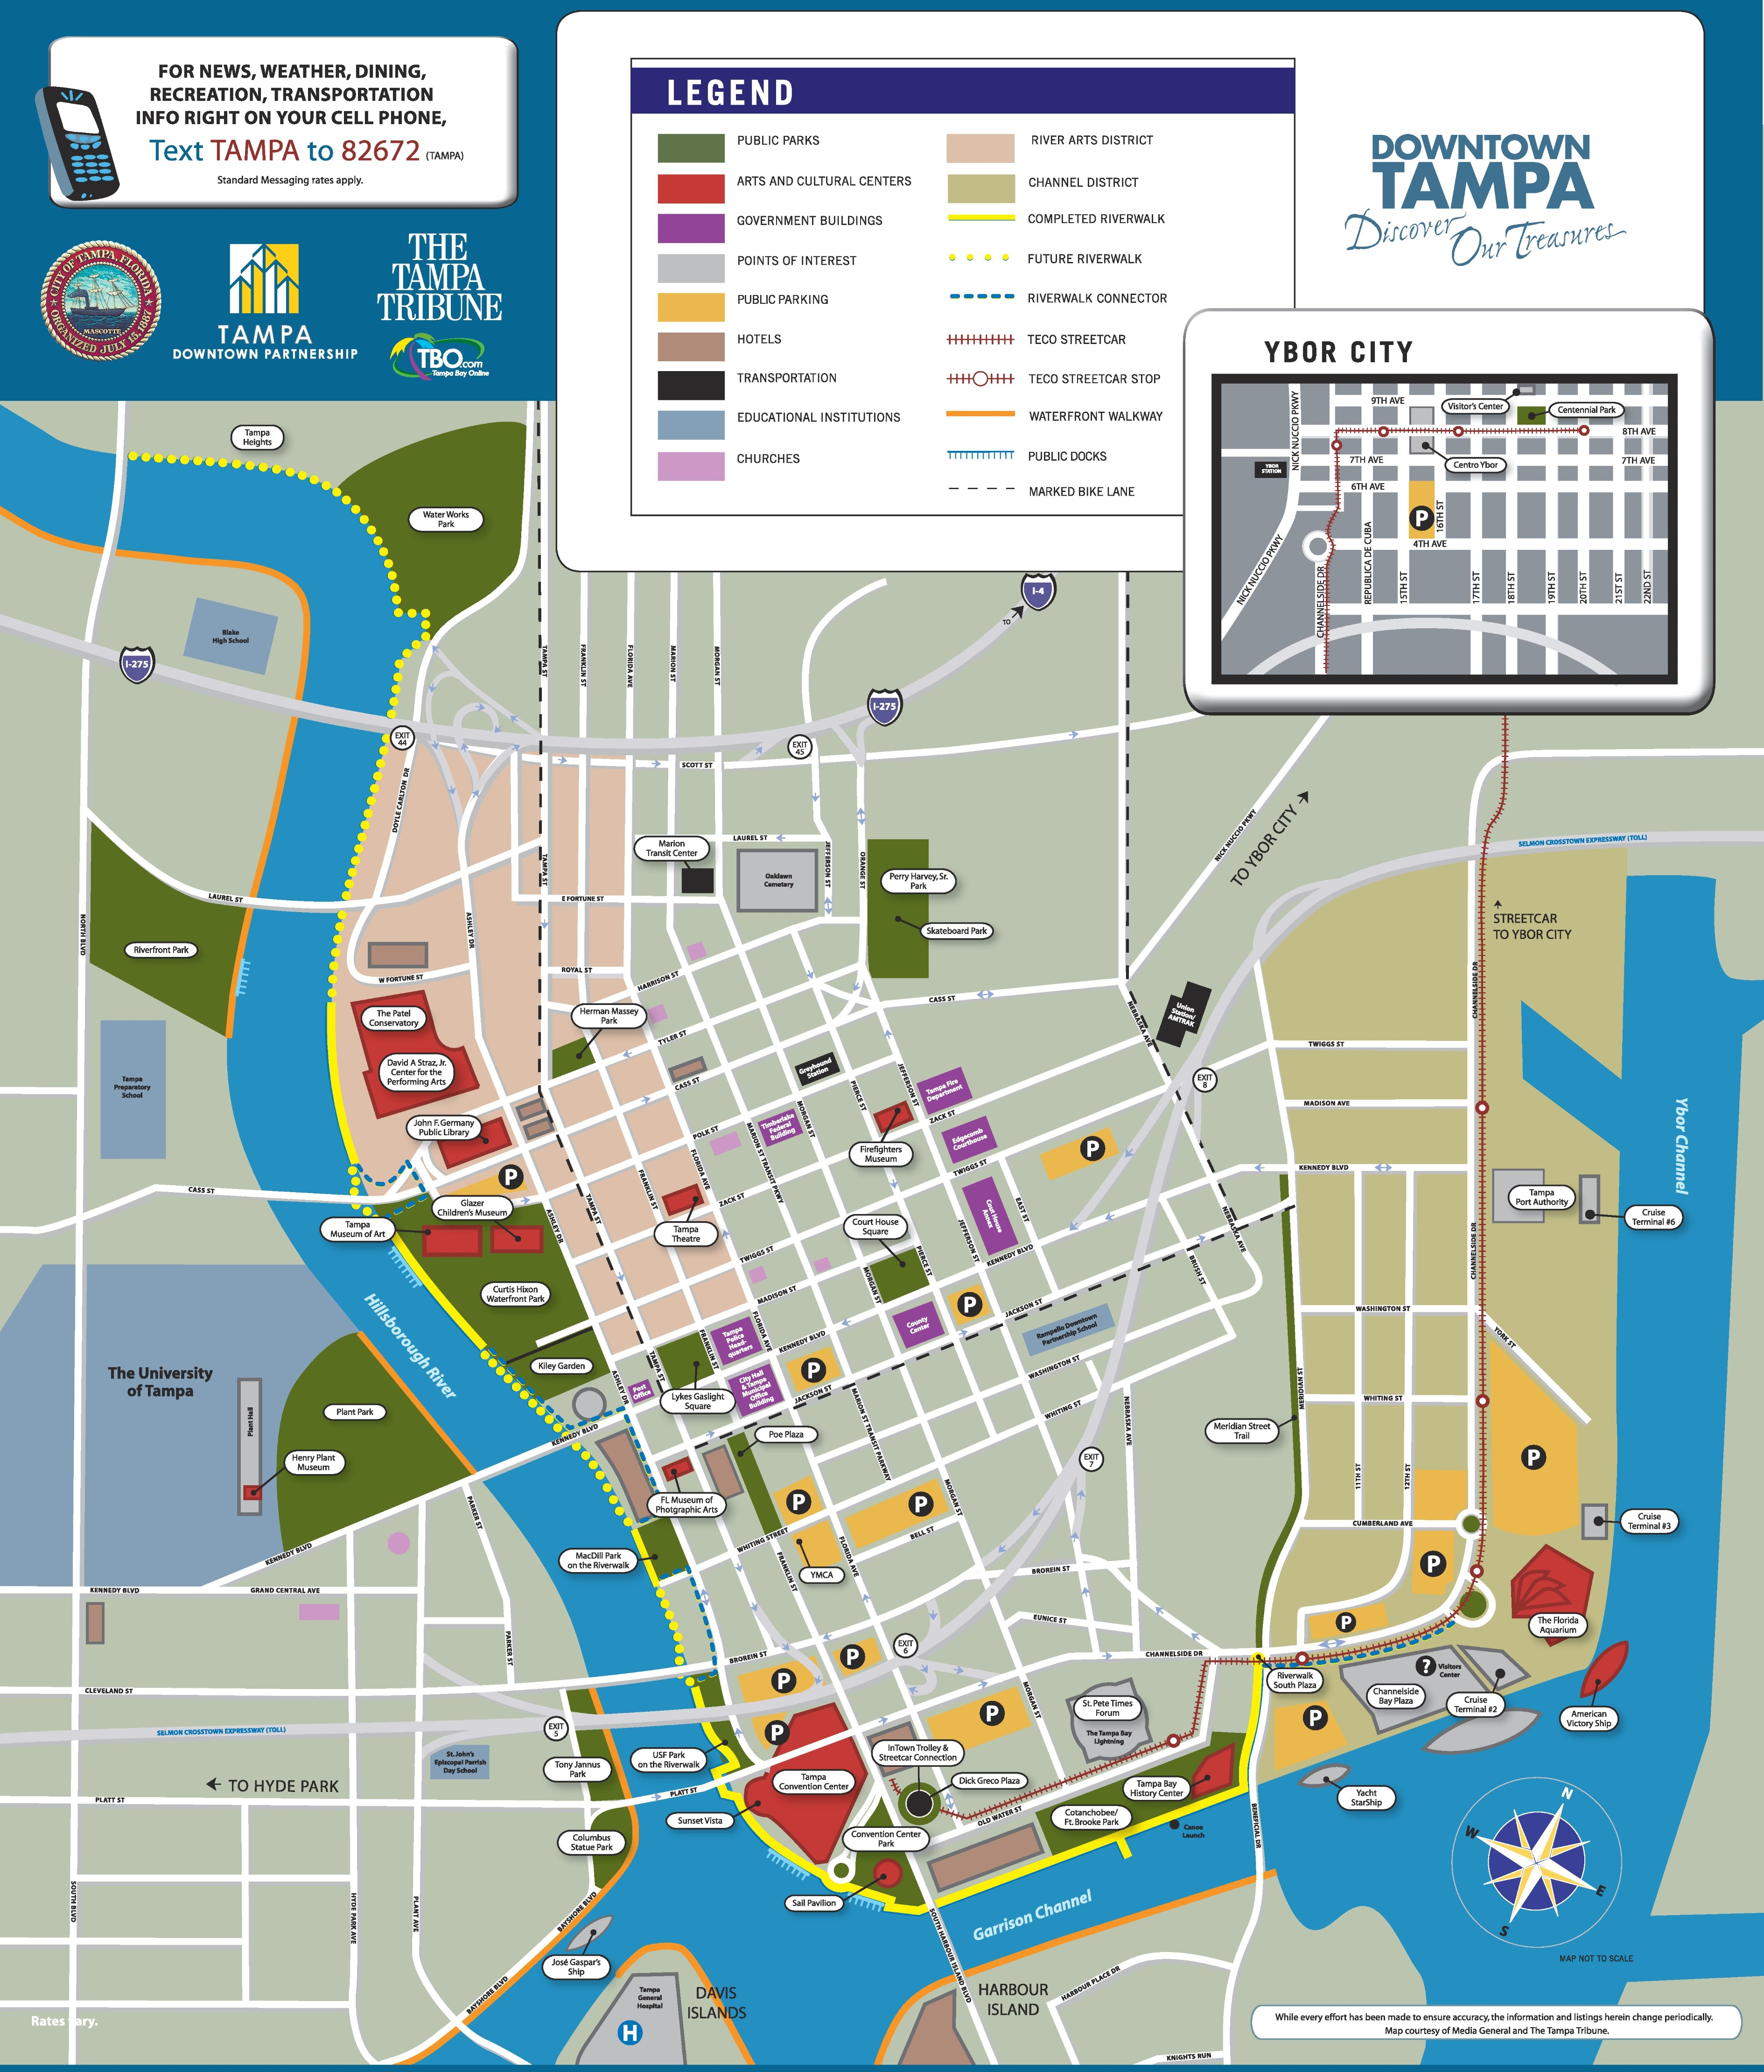 Tampa Maps Florida US Maps Of Tampa - Where is tampa on map of us